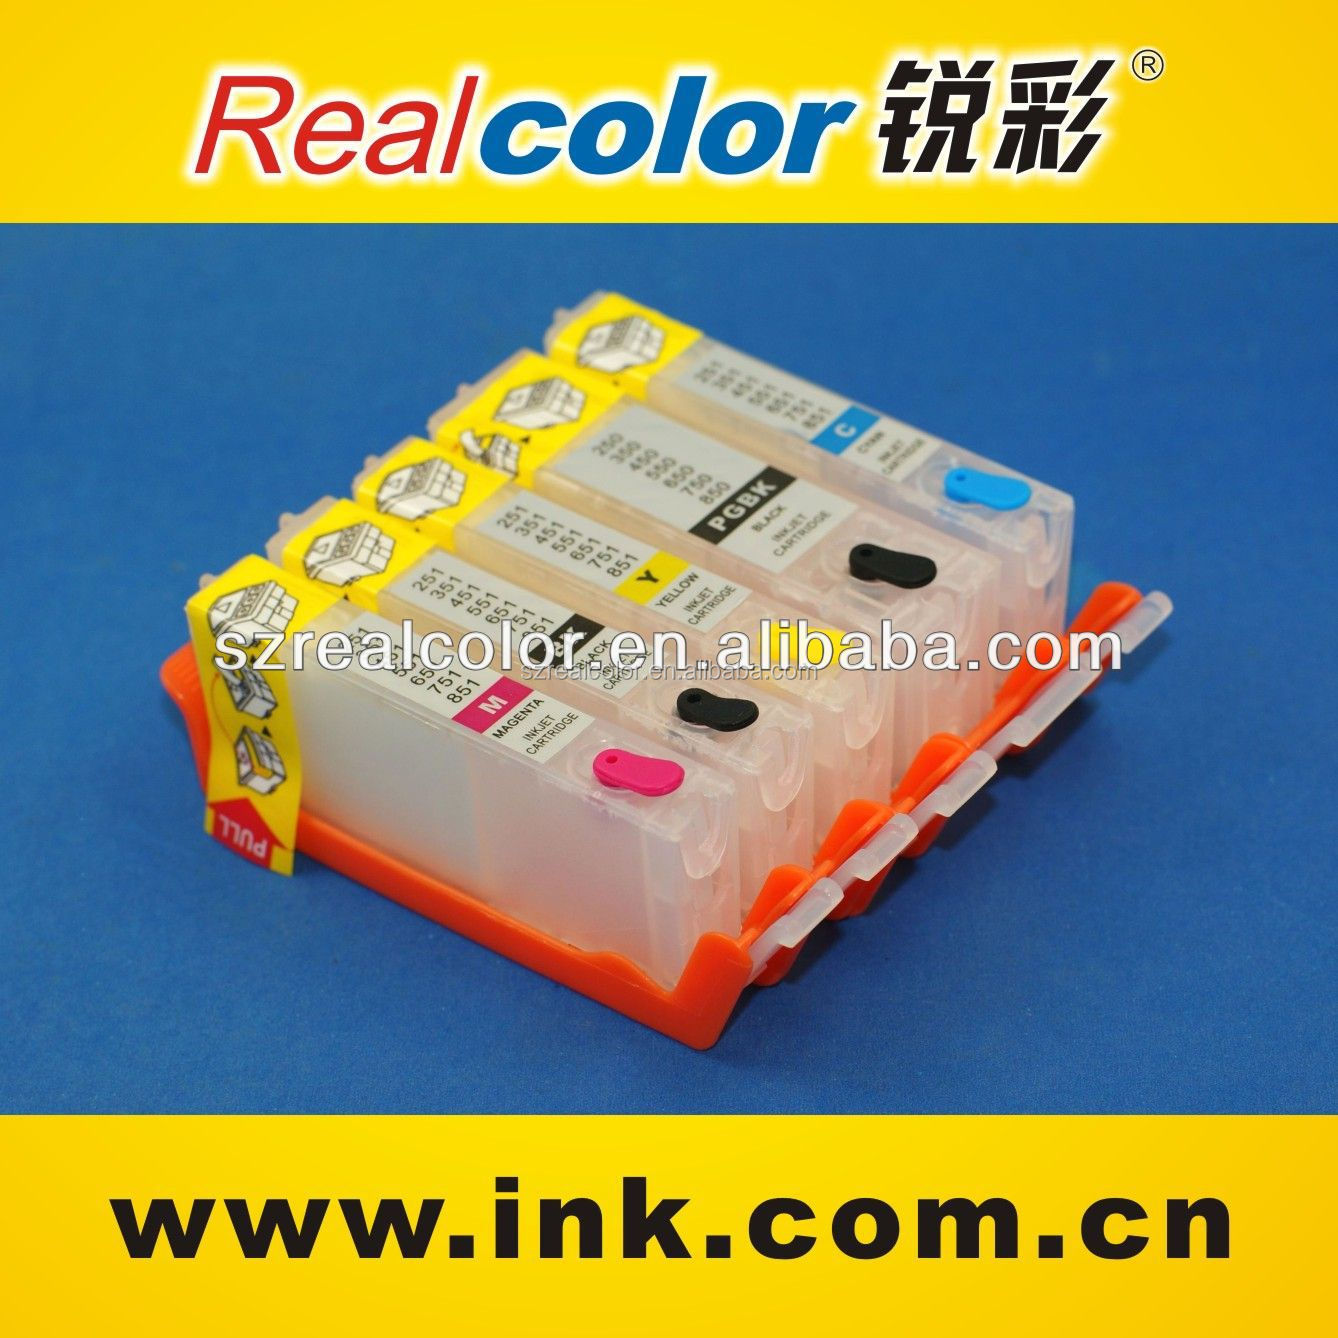 PGI-550 CLI-551 Refill ink cartridge for Canon PIXMA IP7250/MG6350/MG 5450/MX 925/ MX 725 PIXMA MG7150 printer